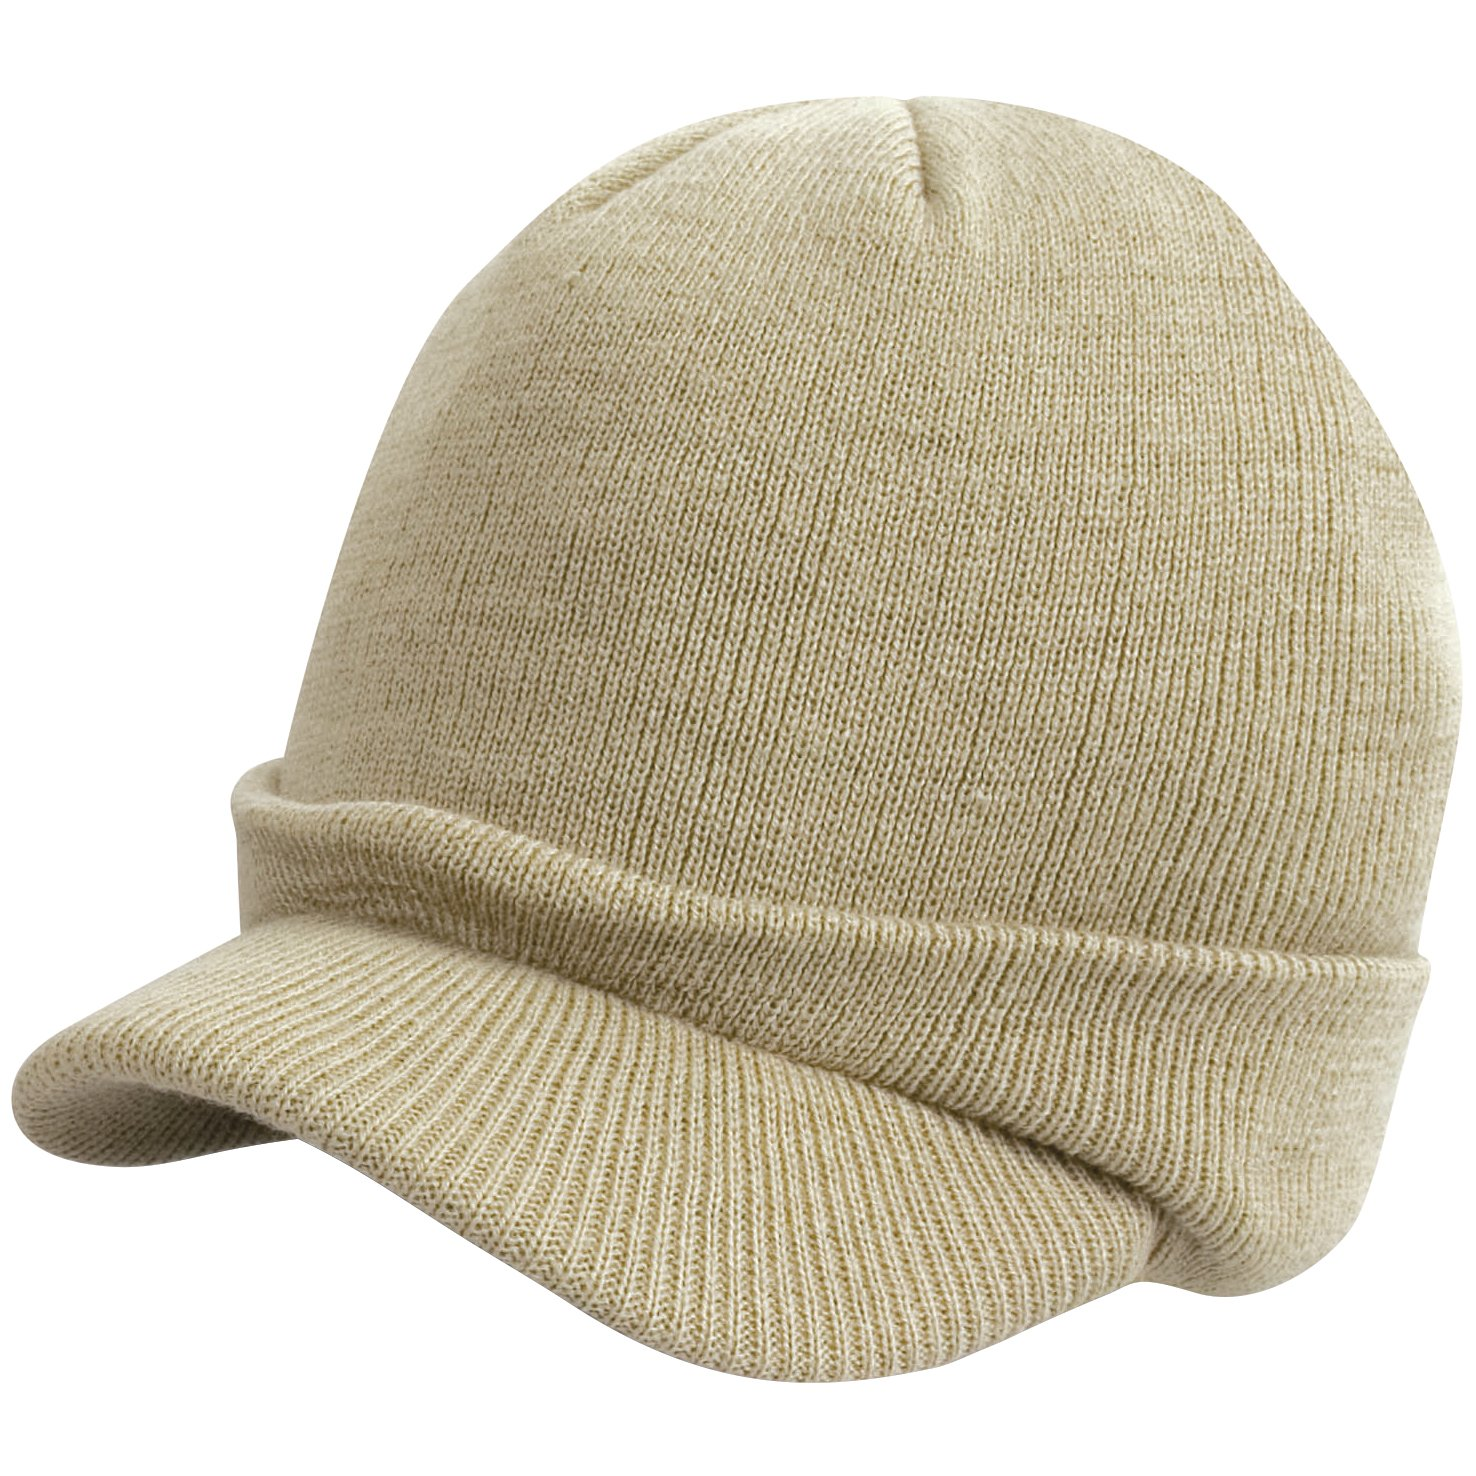 Result Childrens//Kids Big Boys Esco Army Peaked Knitted Winter Hat